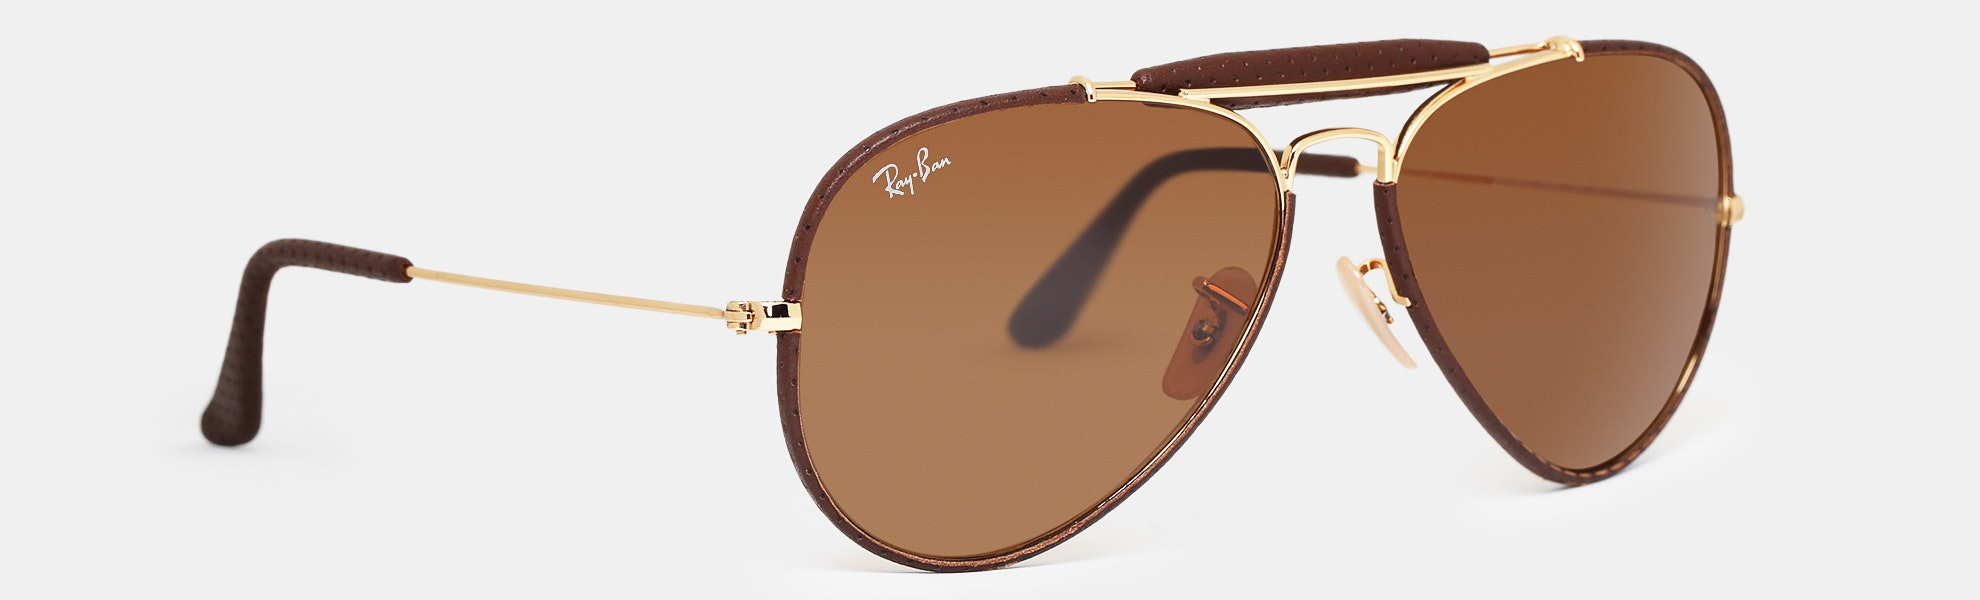 Ray-Ban Outdoorsman Craft Aviator Sunglasses